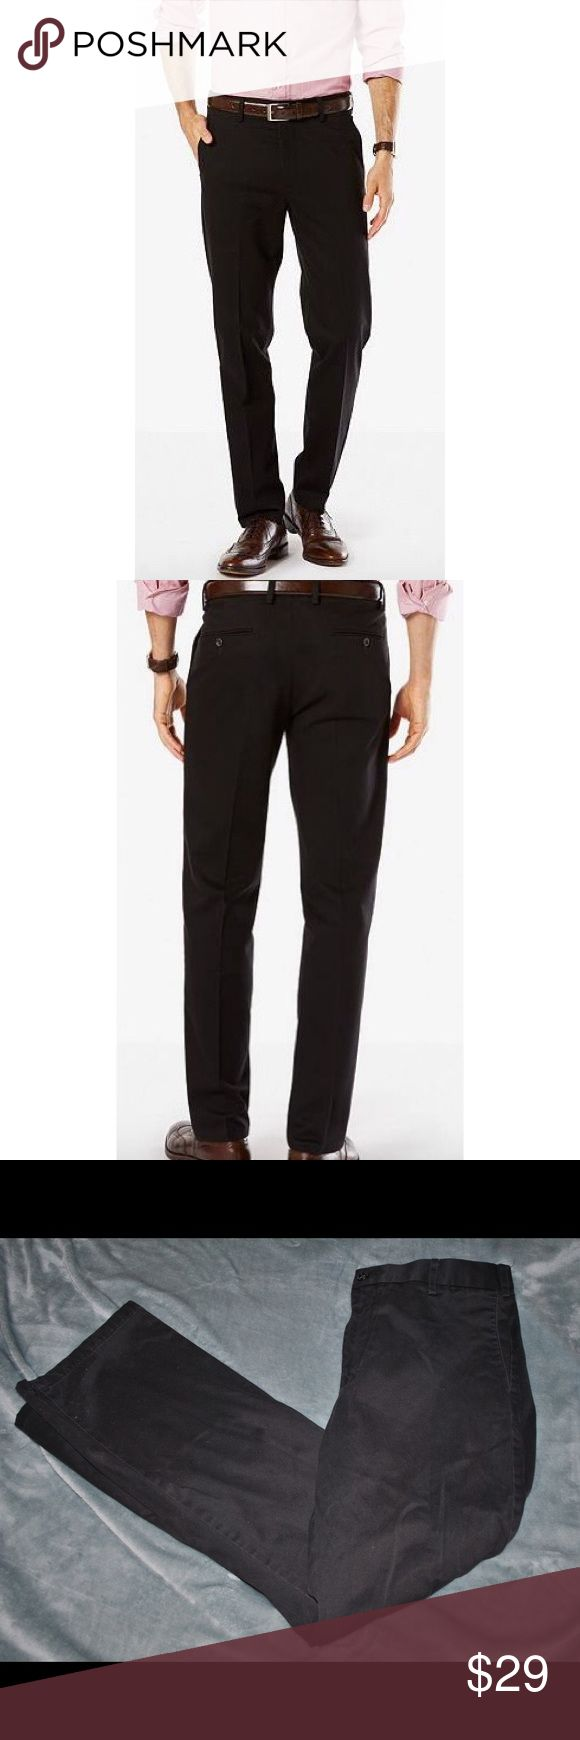 Dockers Black Khaki Slim Fit Pants Dockers black khaki pants with a slim fit. 2 front pockets and 2 buttoned back pockets. Great for work and casual wear. Brand: Dockers Size: 36 x 32 Material:100% Cotton Dockers Pants Chinos & Khakis